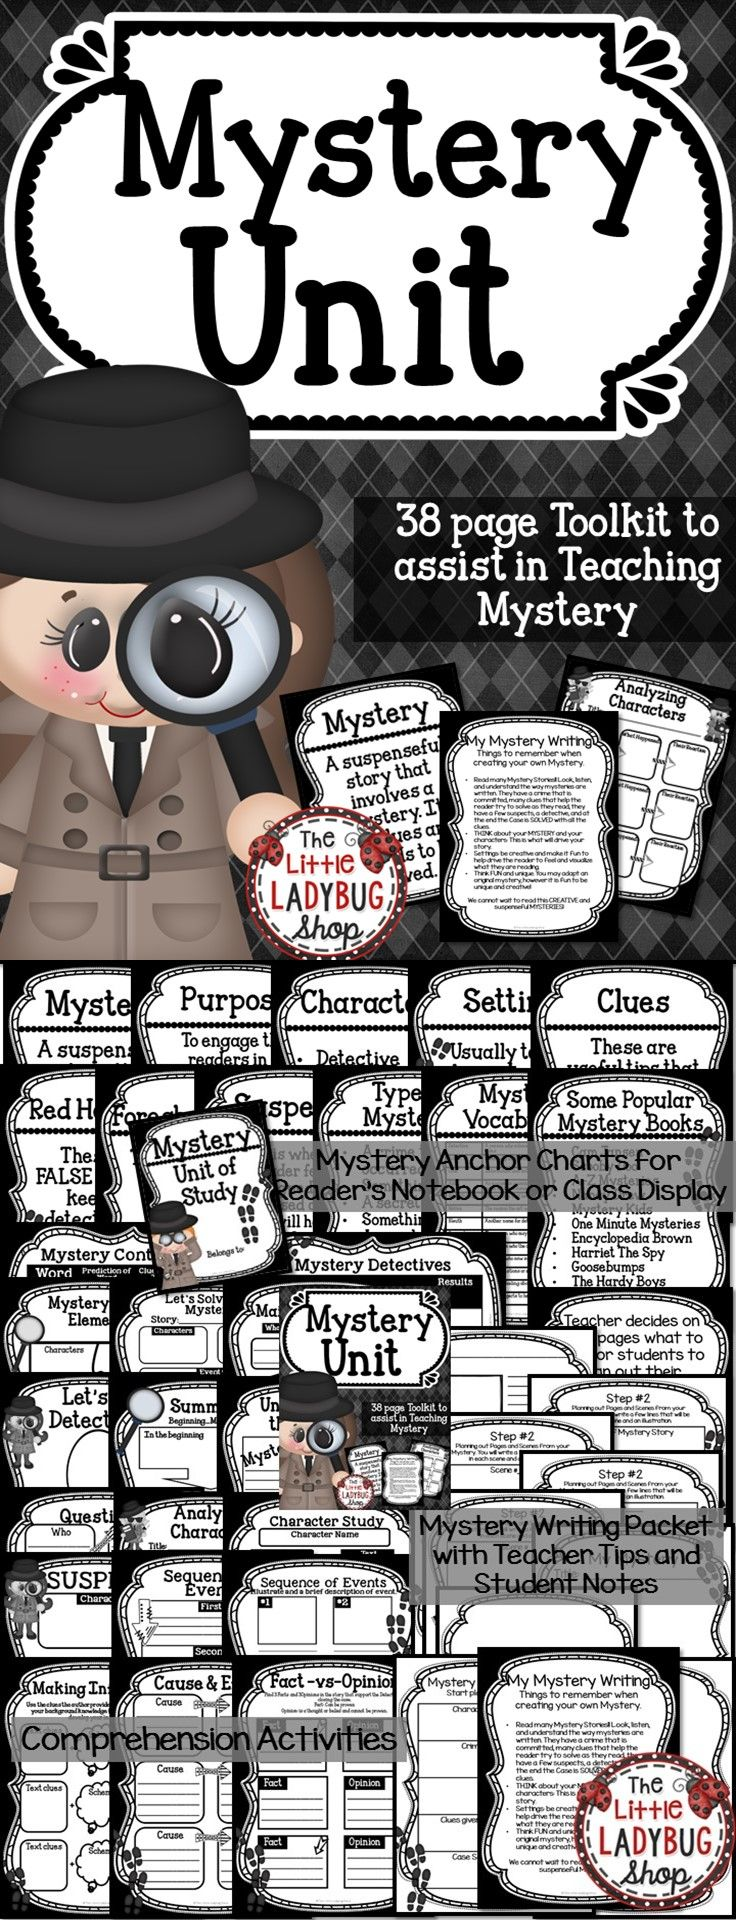 Mystery Unit | Mystery Unit | Mystery Unit  In this Mystery Unit you will find tools to assist you in teaching about the genre Mystery. I have gathered components to get you started on the Reading and Writing components of this Unit of Study.   ★★Included {38 pages}★★